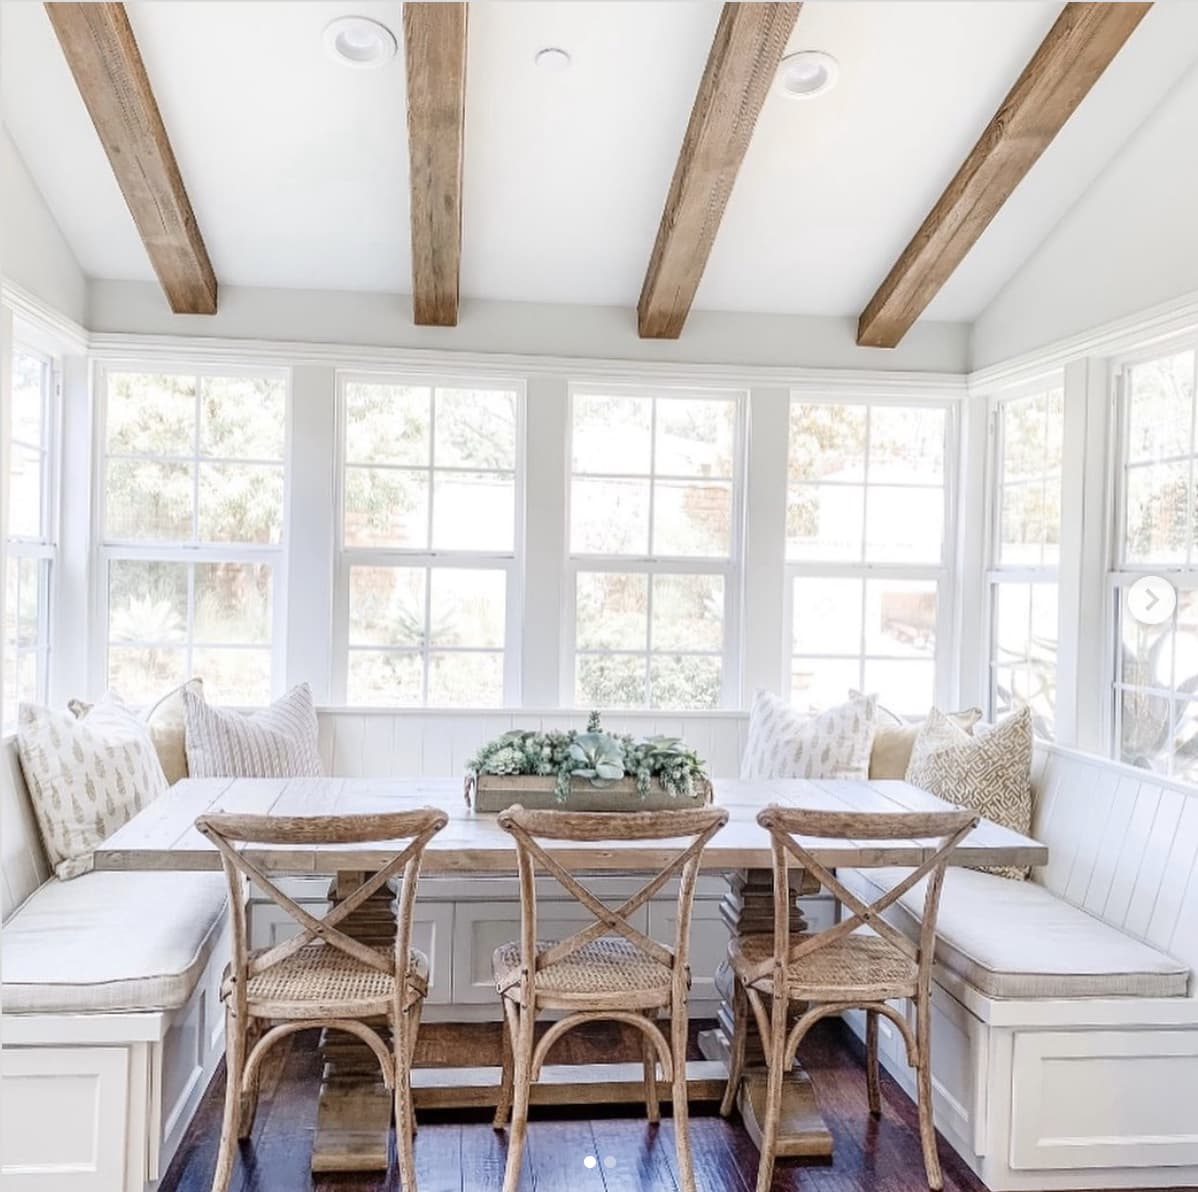 breakfast nook off kitchen with bay windows and rustic beams overhead